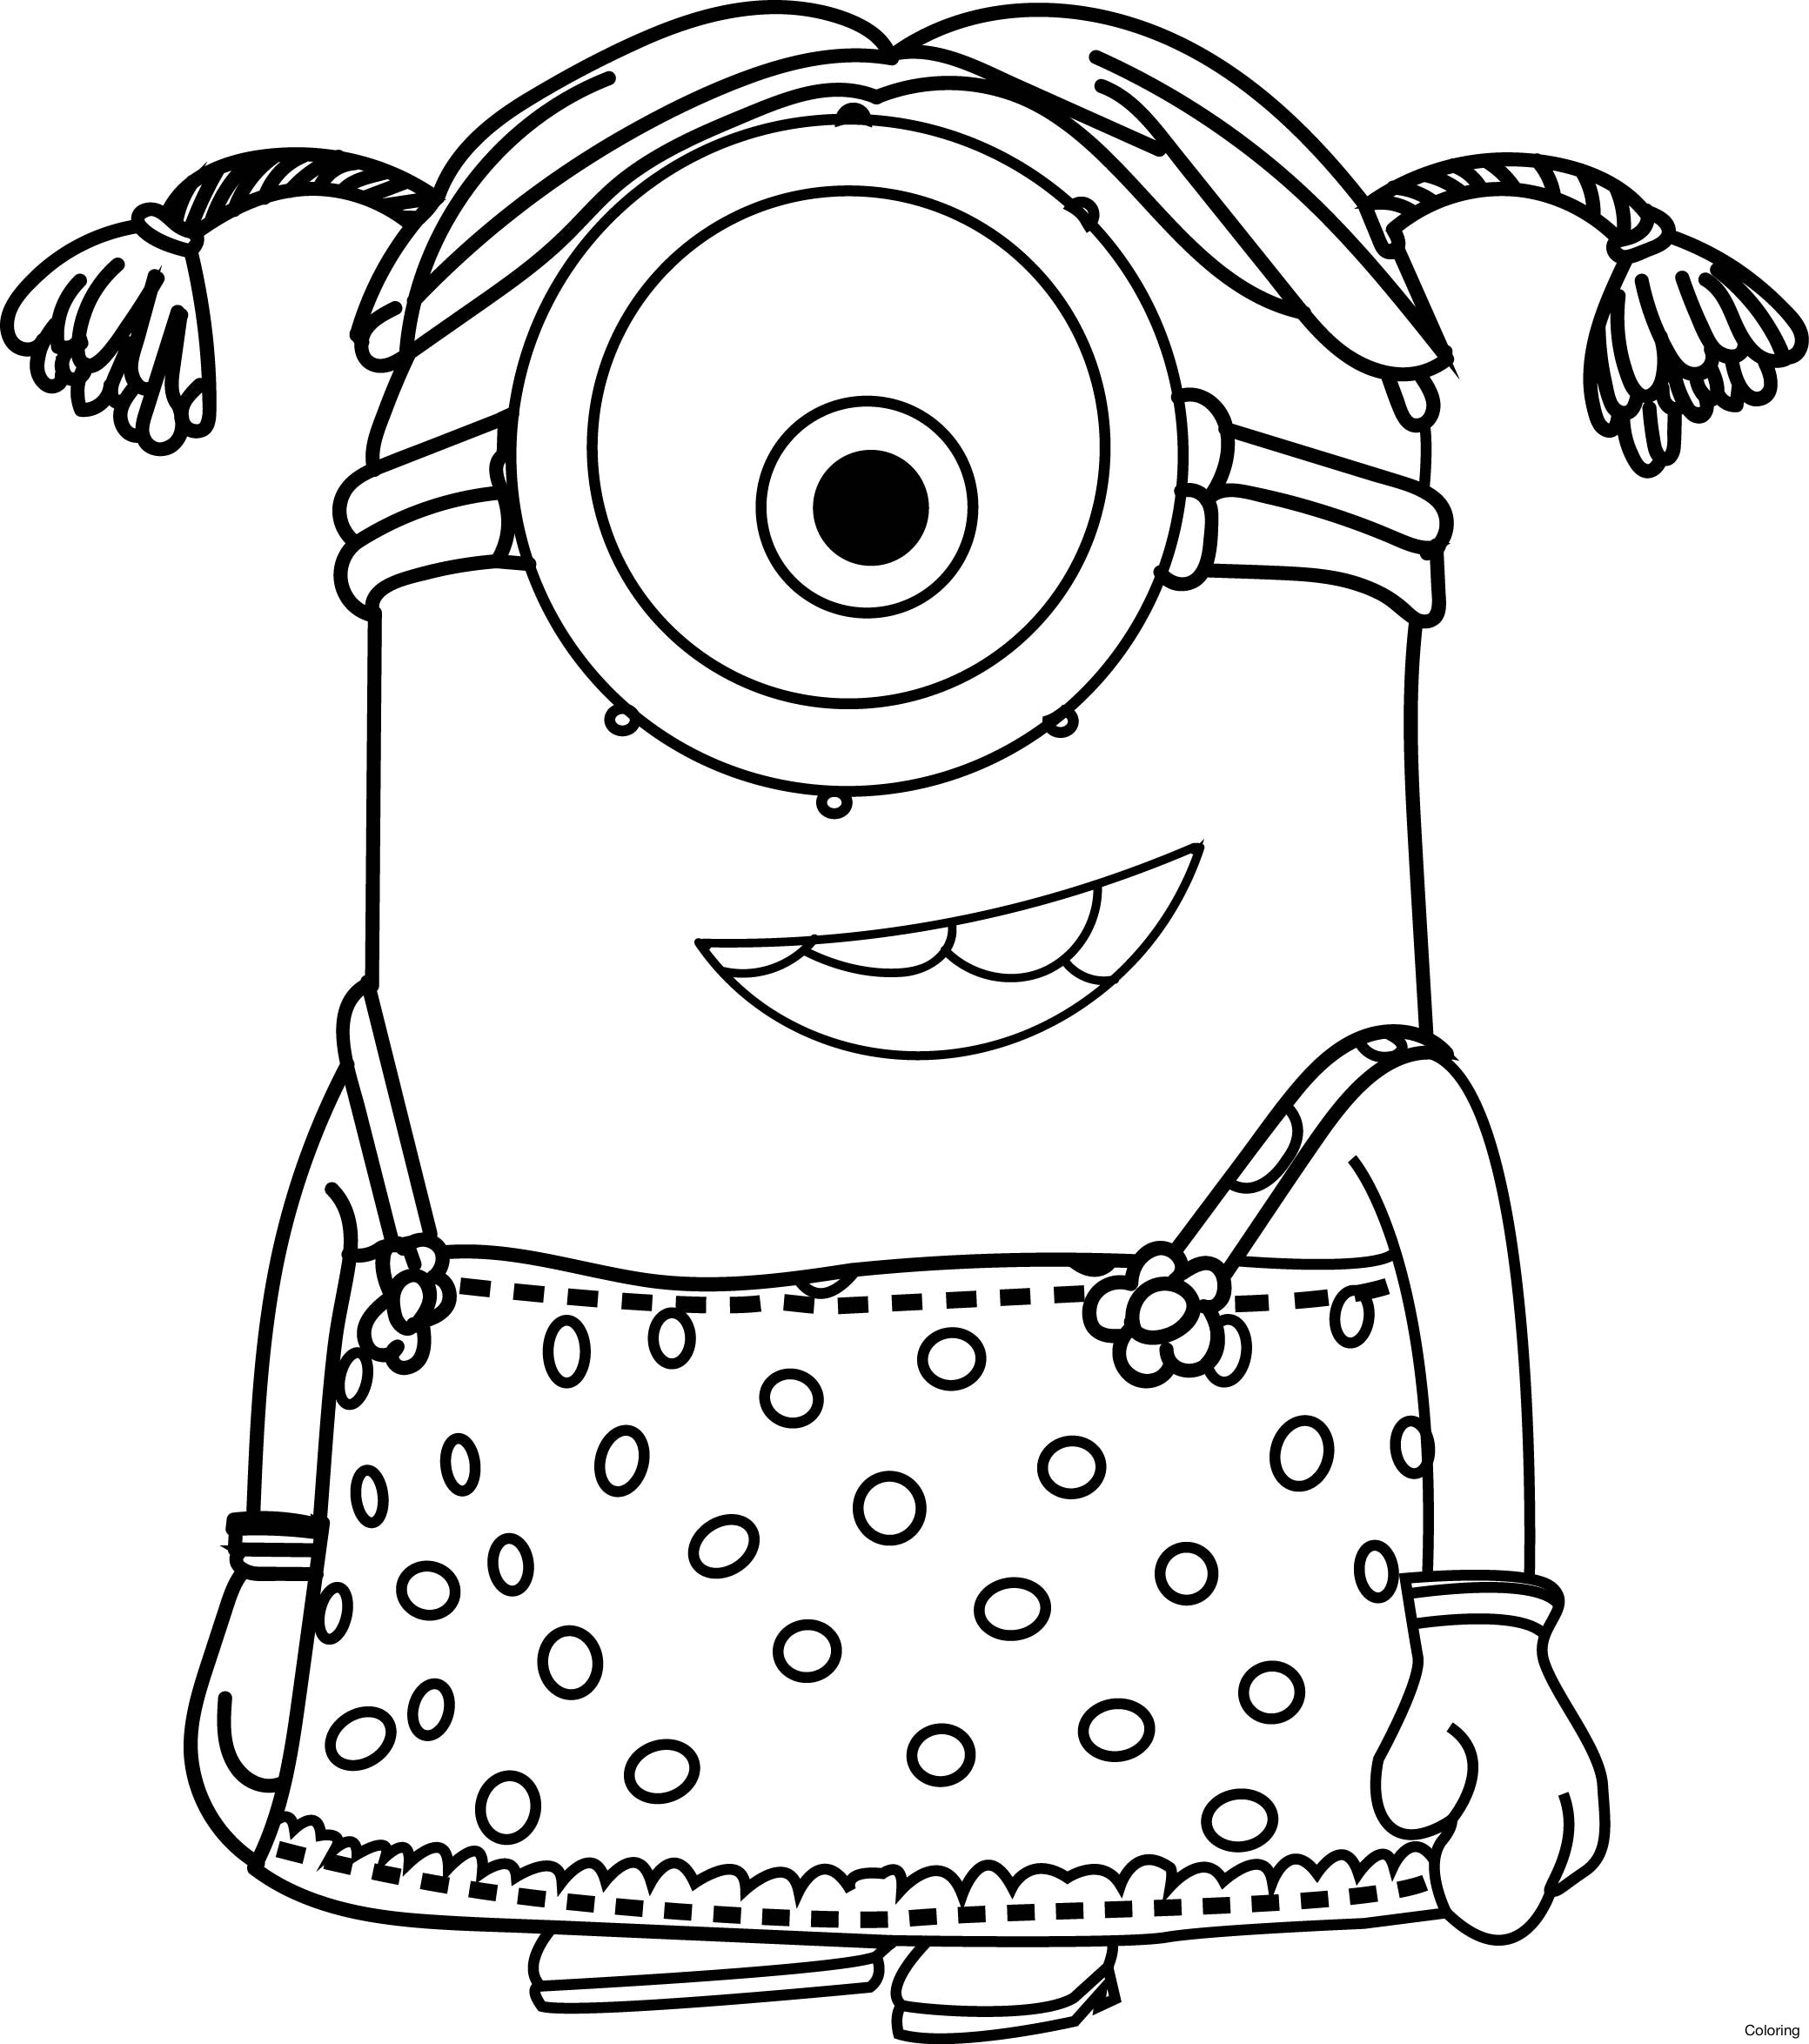 Minion Printable Coloring Pages  Collection 3a - To print for your project